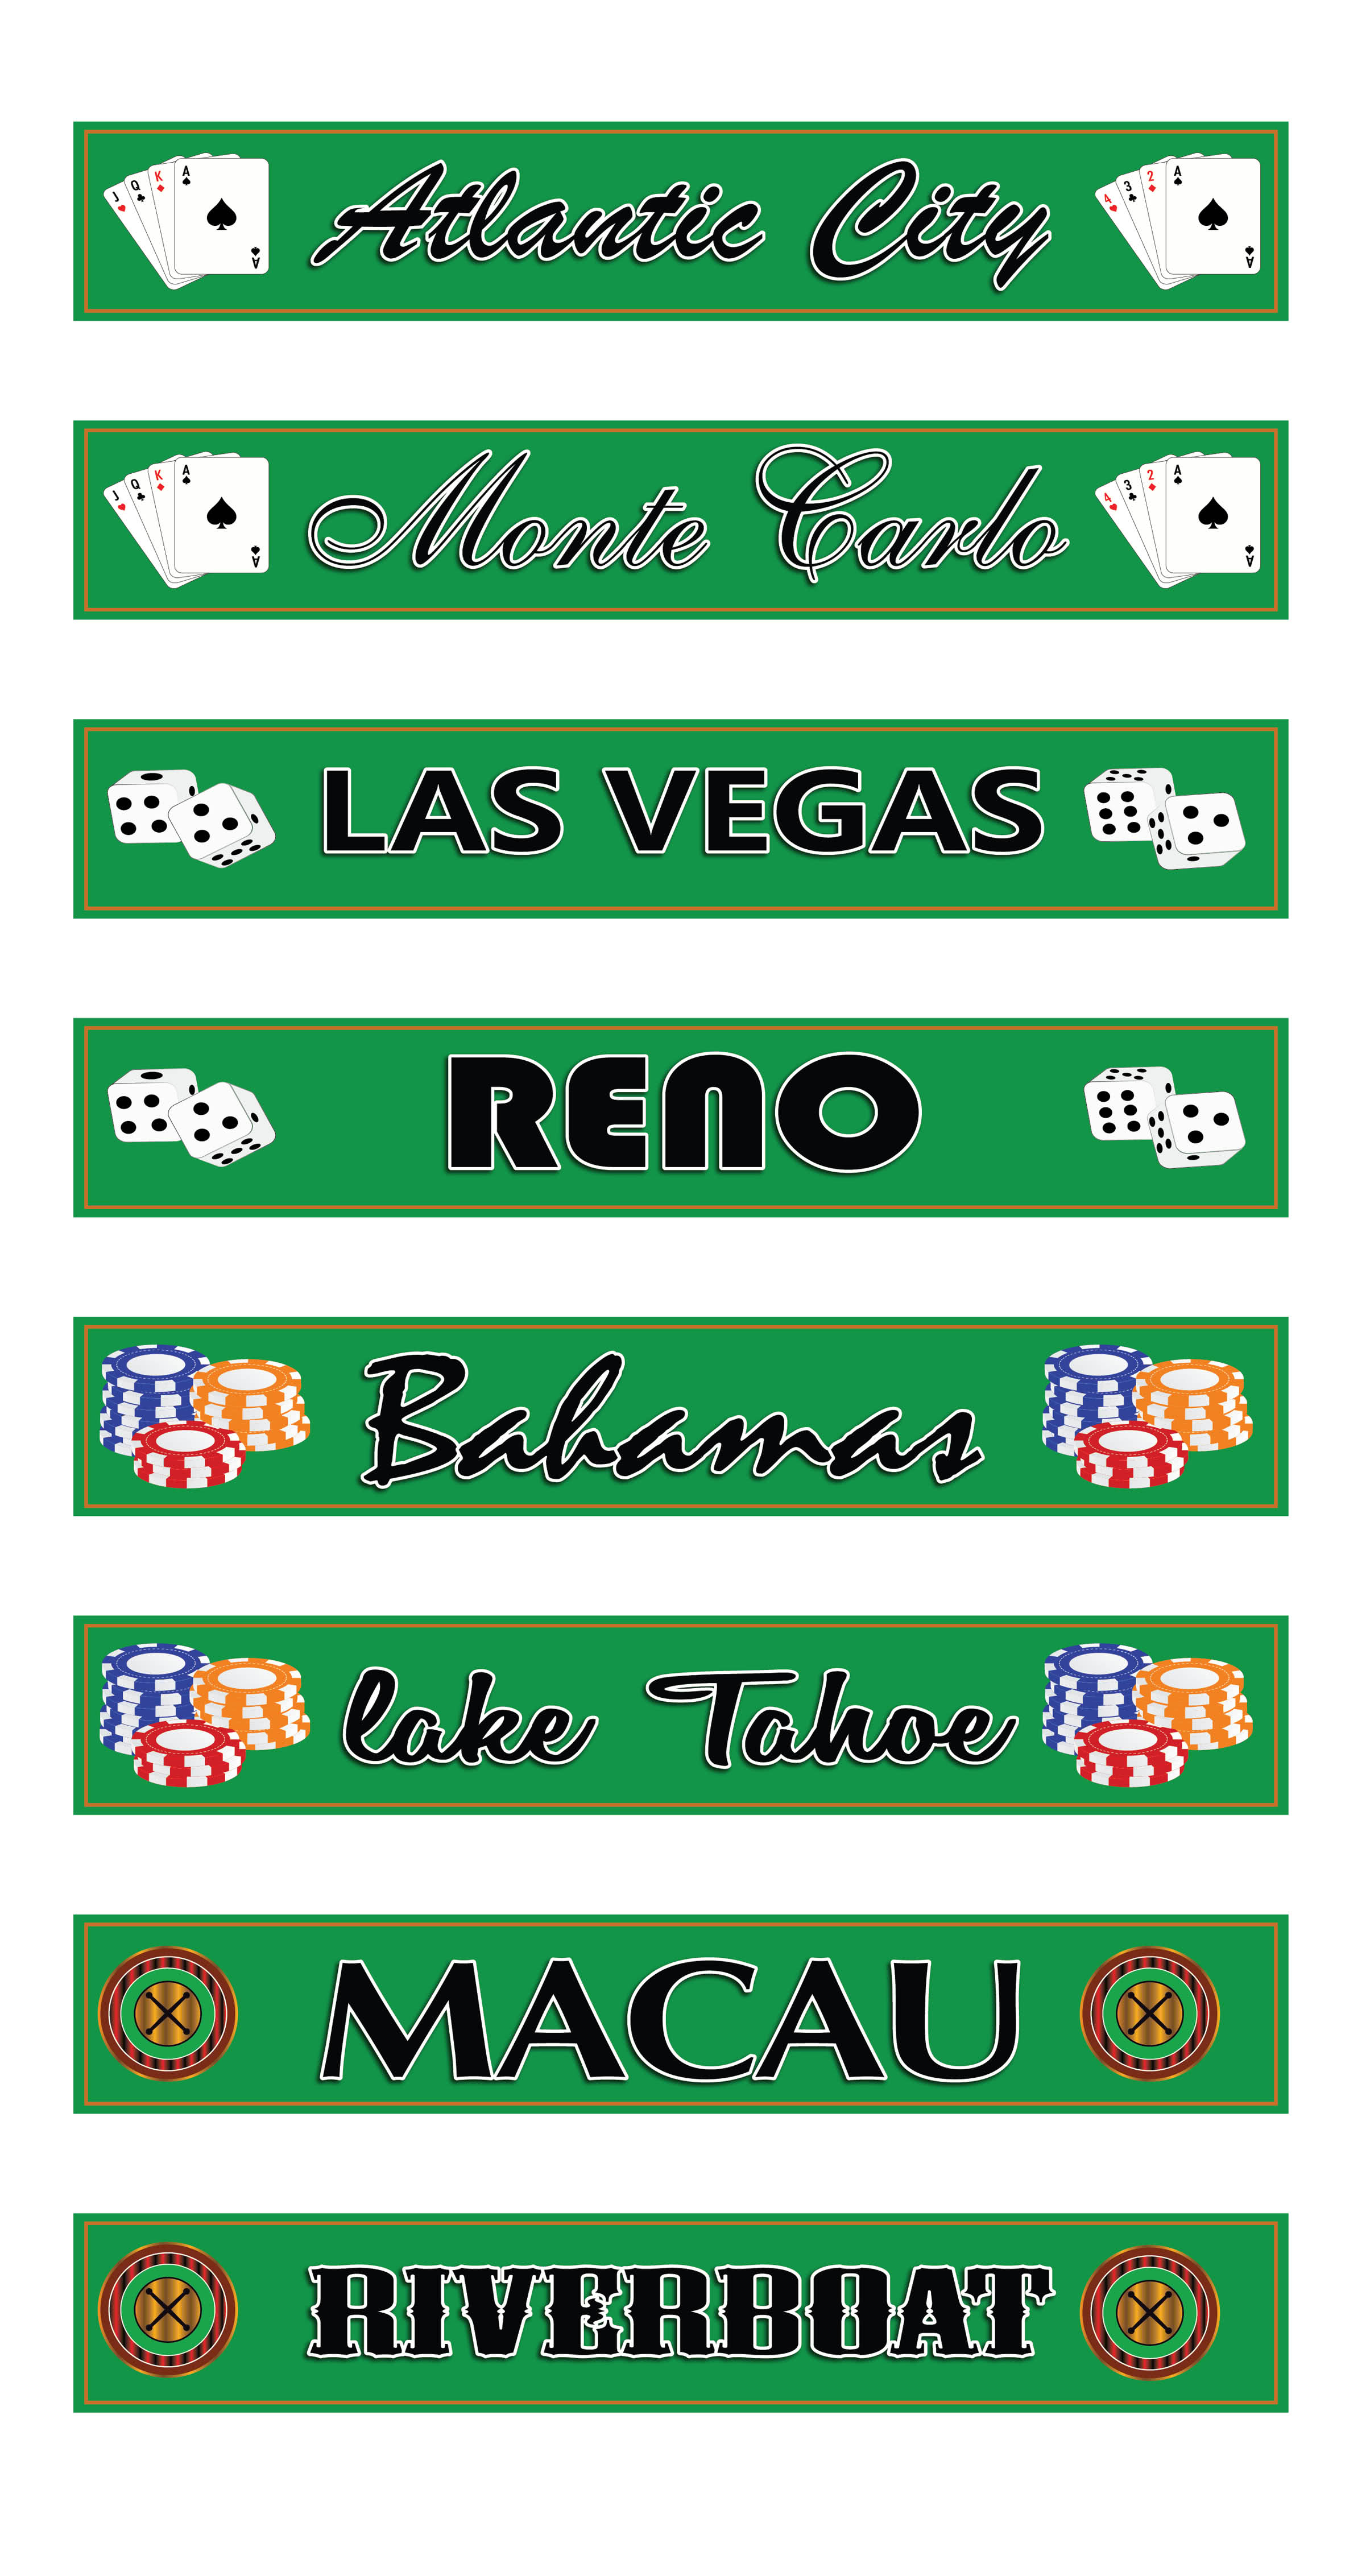 Worldwide Casinos PVC Party Sign Decorations 60cm x 10cm – Pack of 8